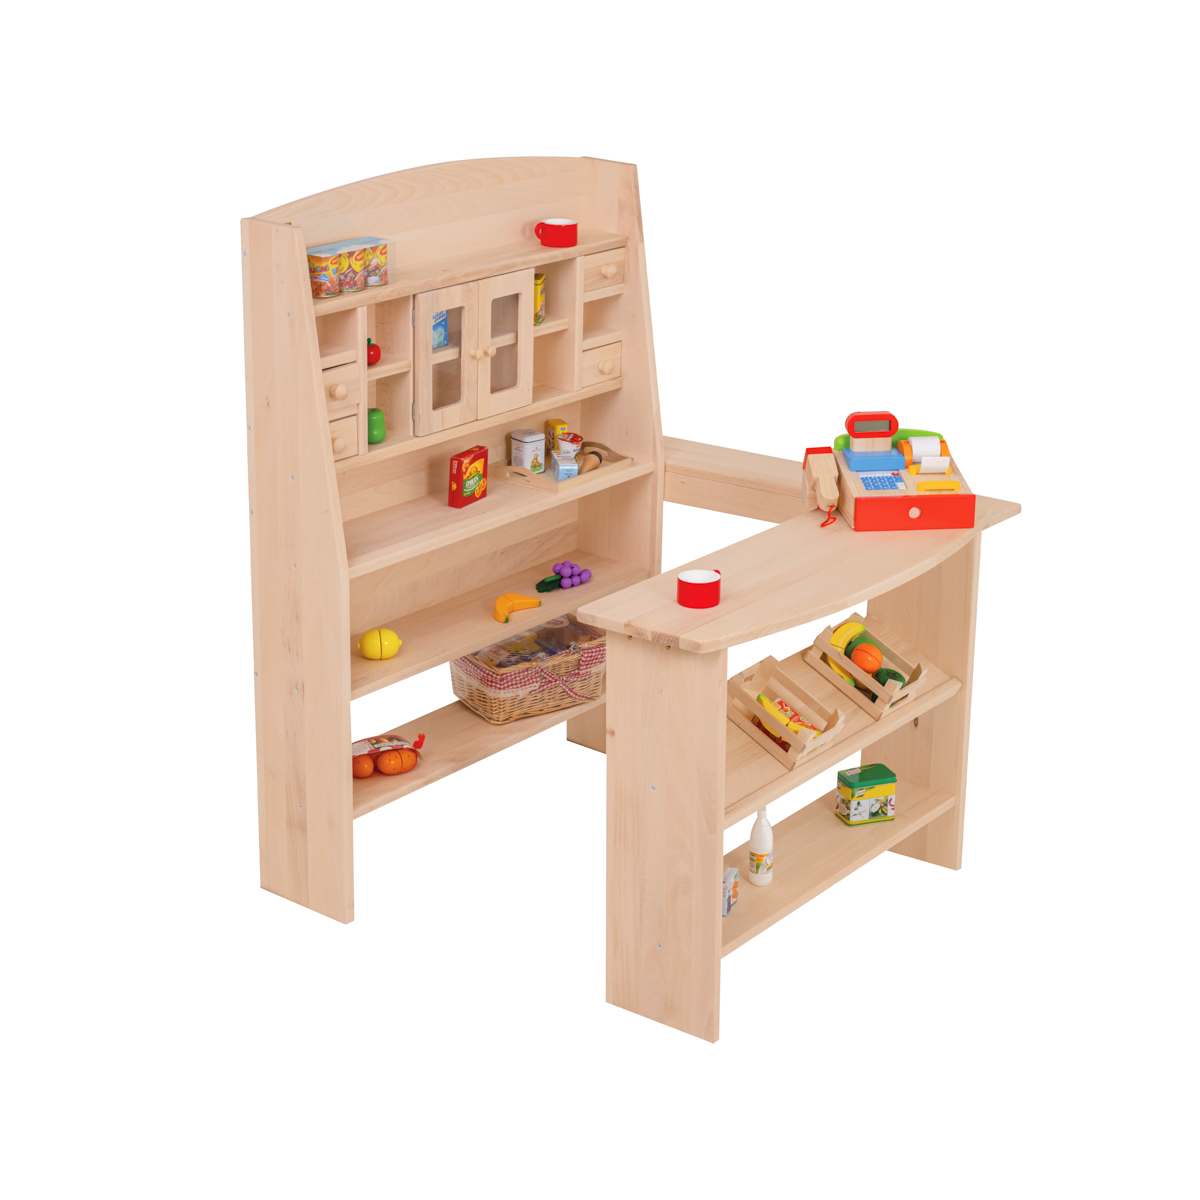 exklusiv hier holz kaufmannsladen holz spielzeug peitz. Black Bedroom Furniture Sets. Home Design Ideas